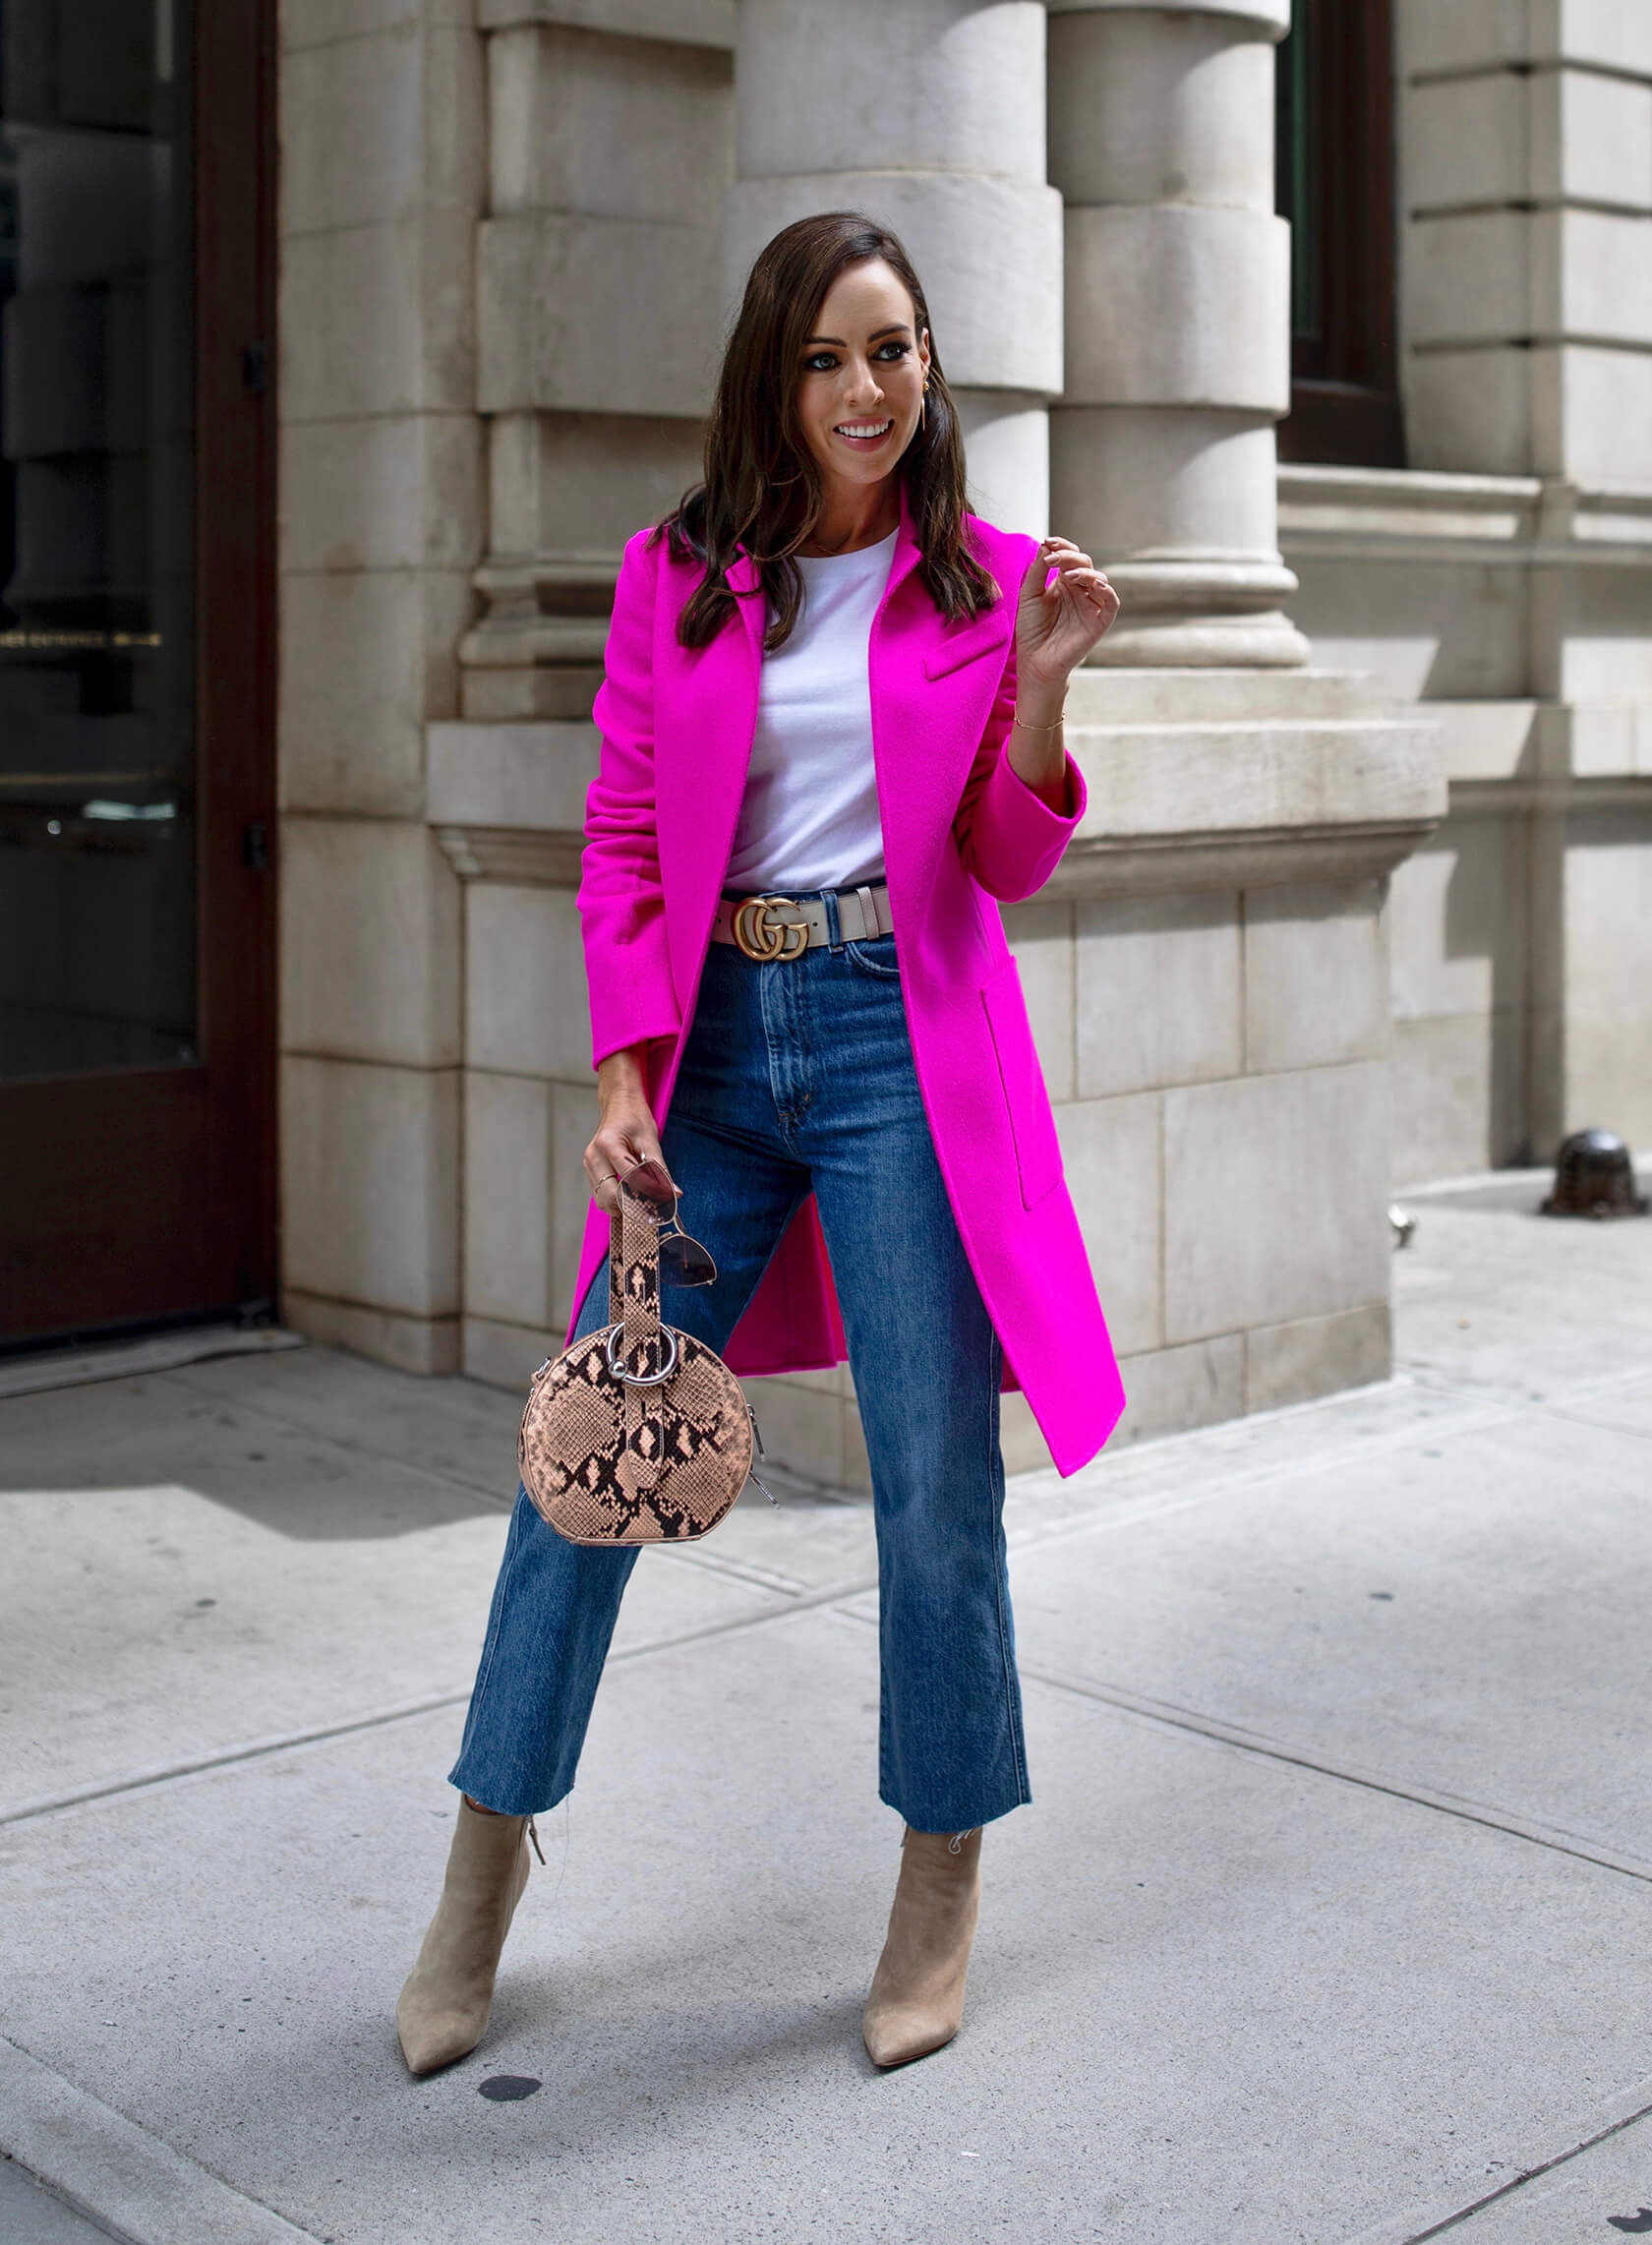 Sydne Style shows the best hot pink coats for colorful fashion ideas